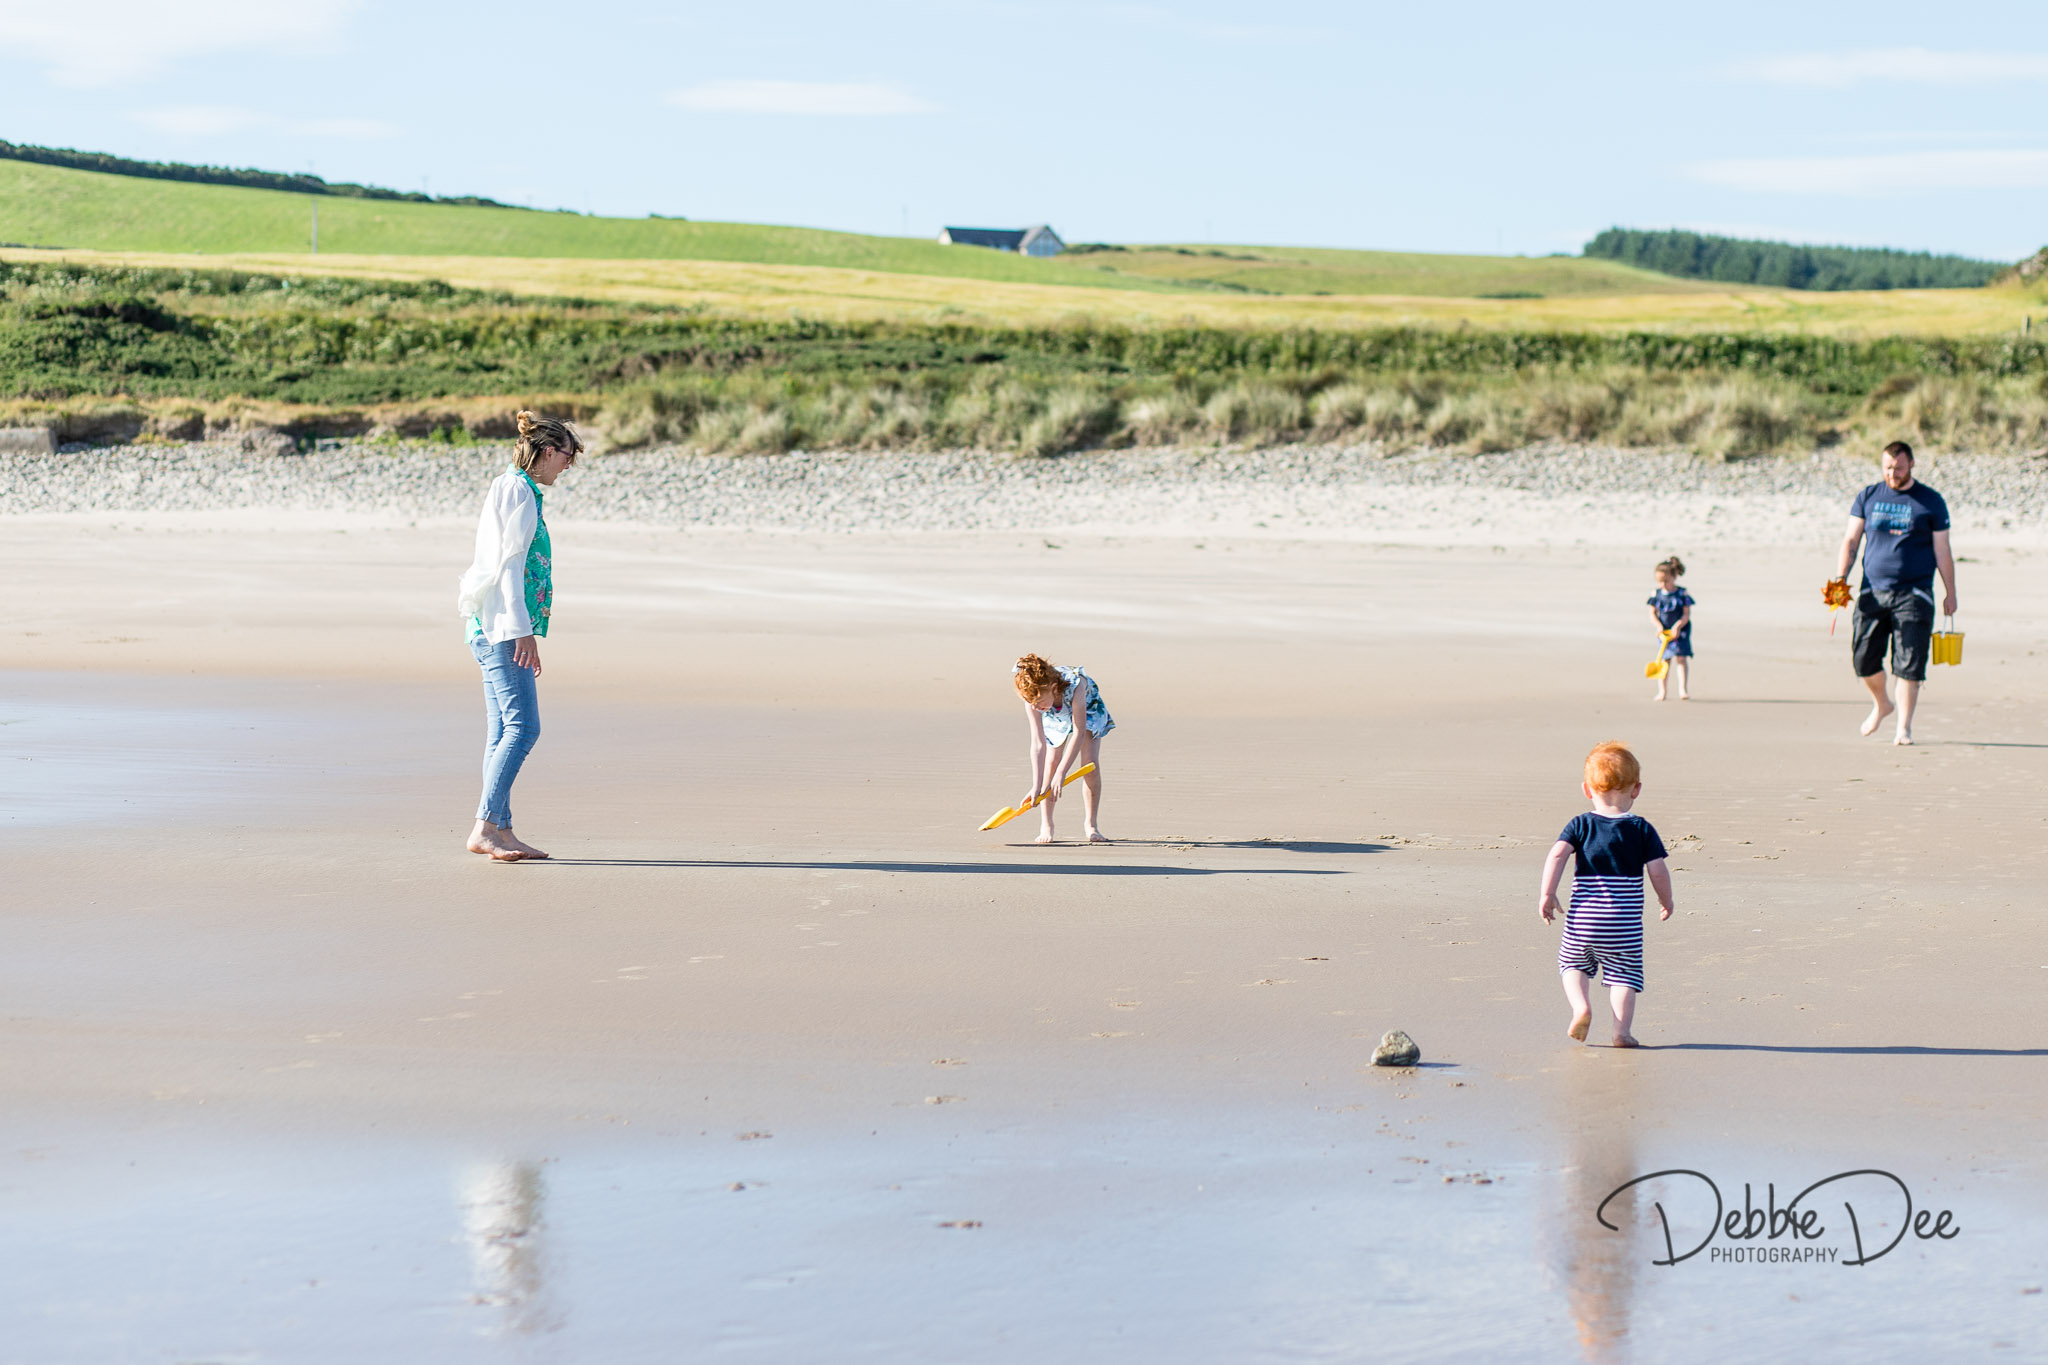 Family photography session banff beach aberdeenshire Debbie Dee Photography family at beach